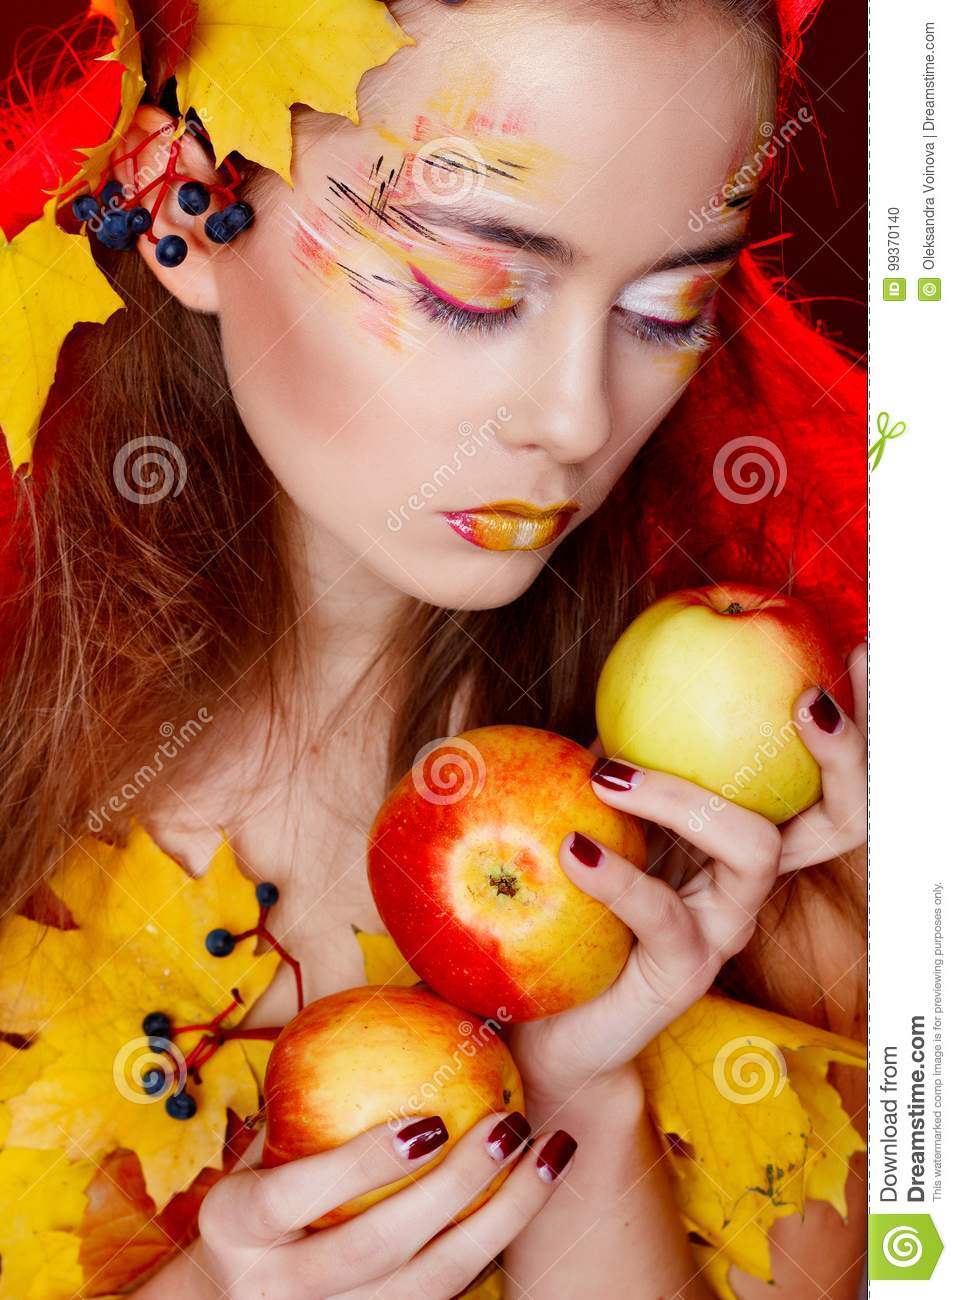 Beautiful young woman with autumn make up holding apples in her